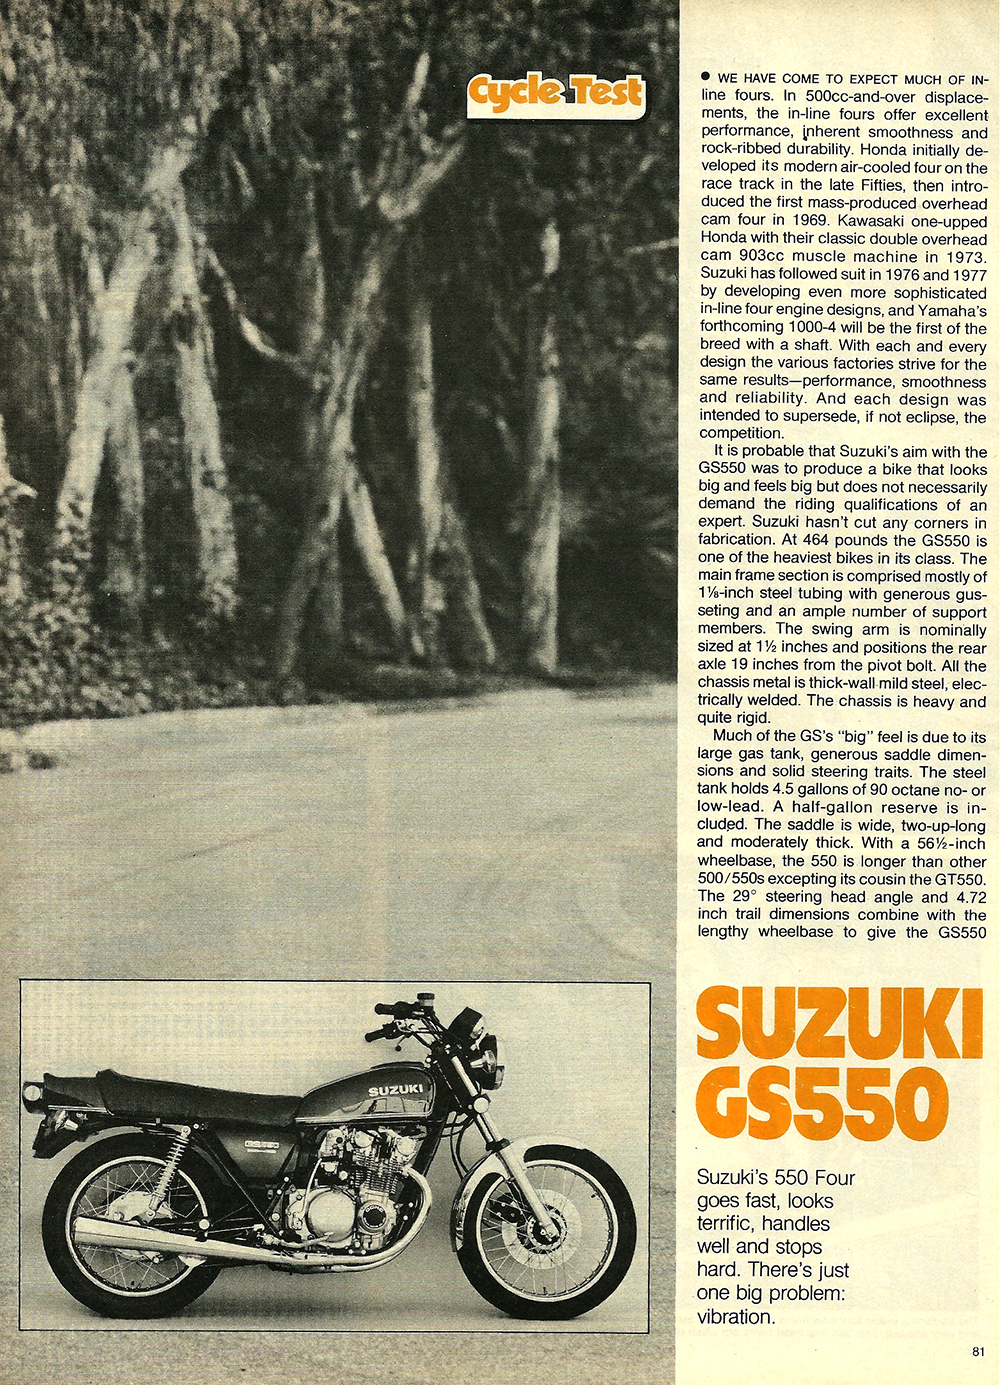 1977 Suzuki GS550 road test 02.jpg